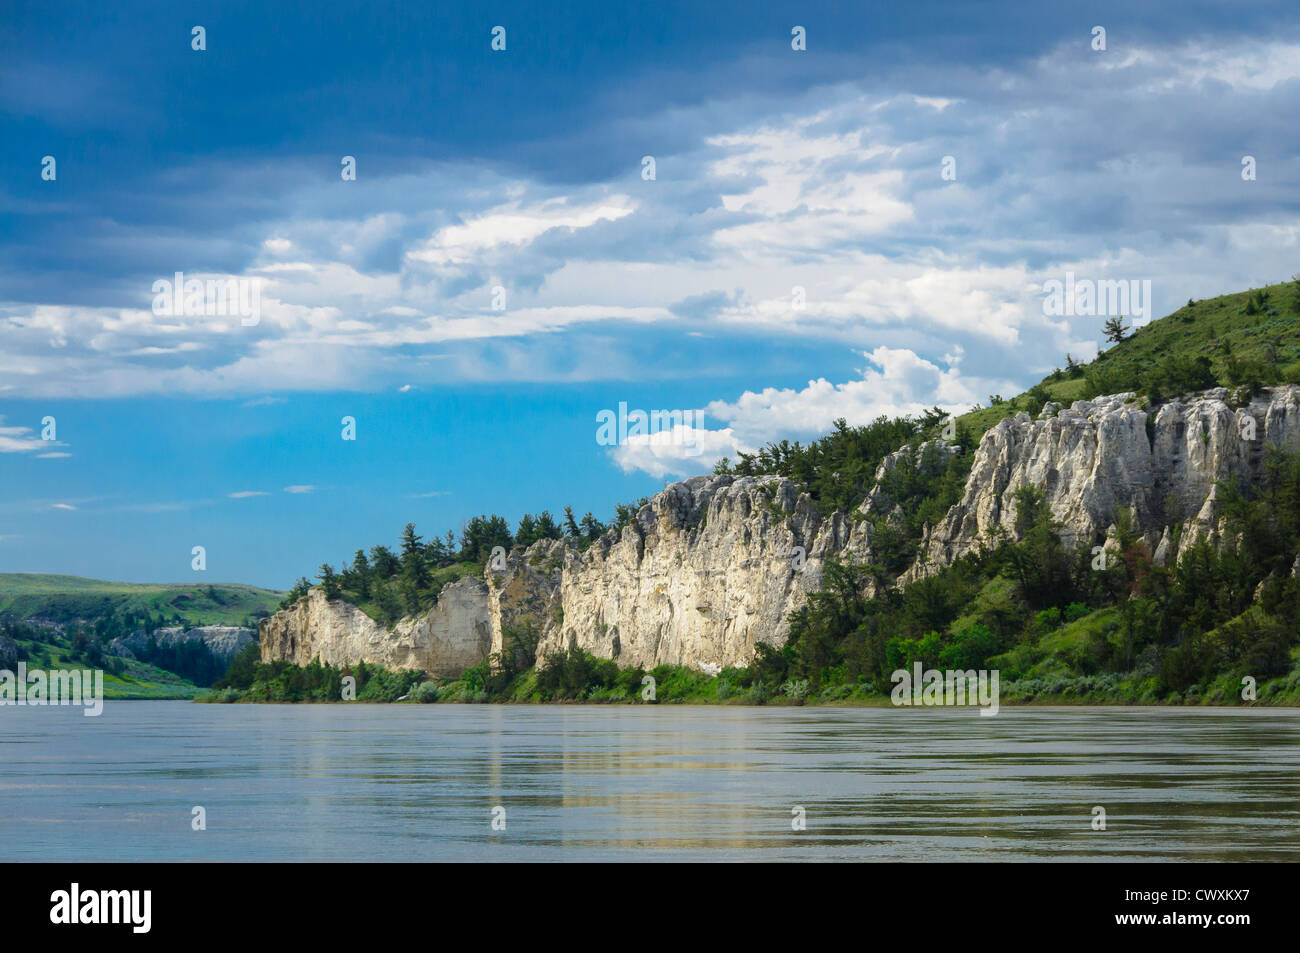 White sandstone bluffs of the Upper Missouri River Breaks National Monument, Montana. - Stock Image